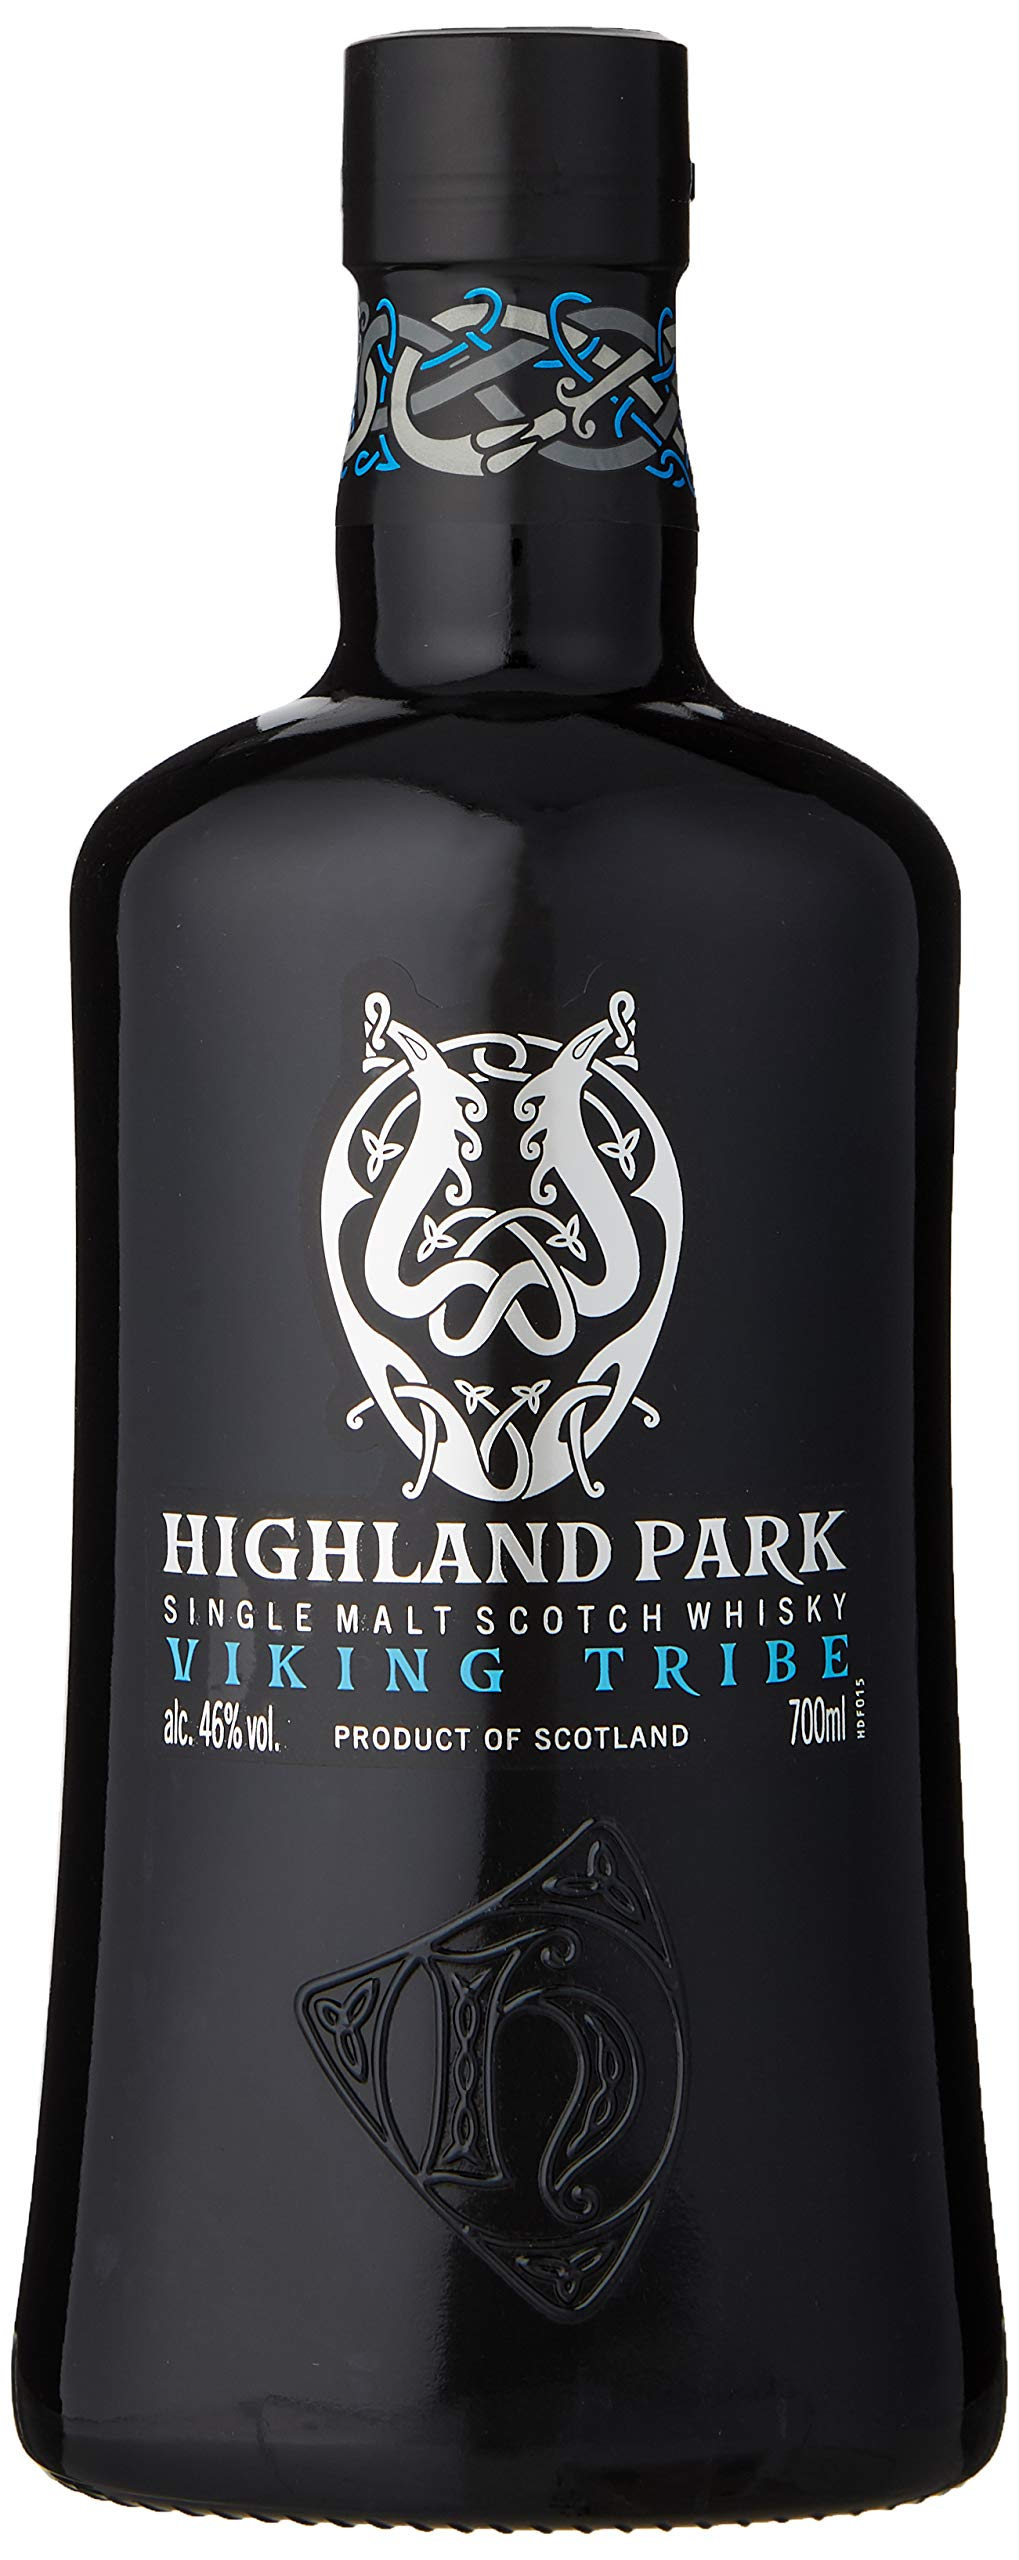 Highland Park Viking Tribe Single Malt Scotch Whisky, 70 cl – Amazon exclusive